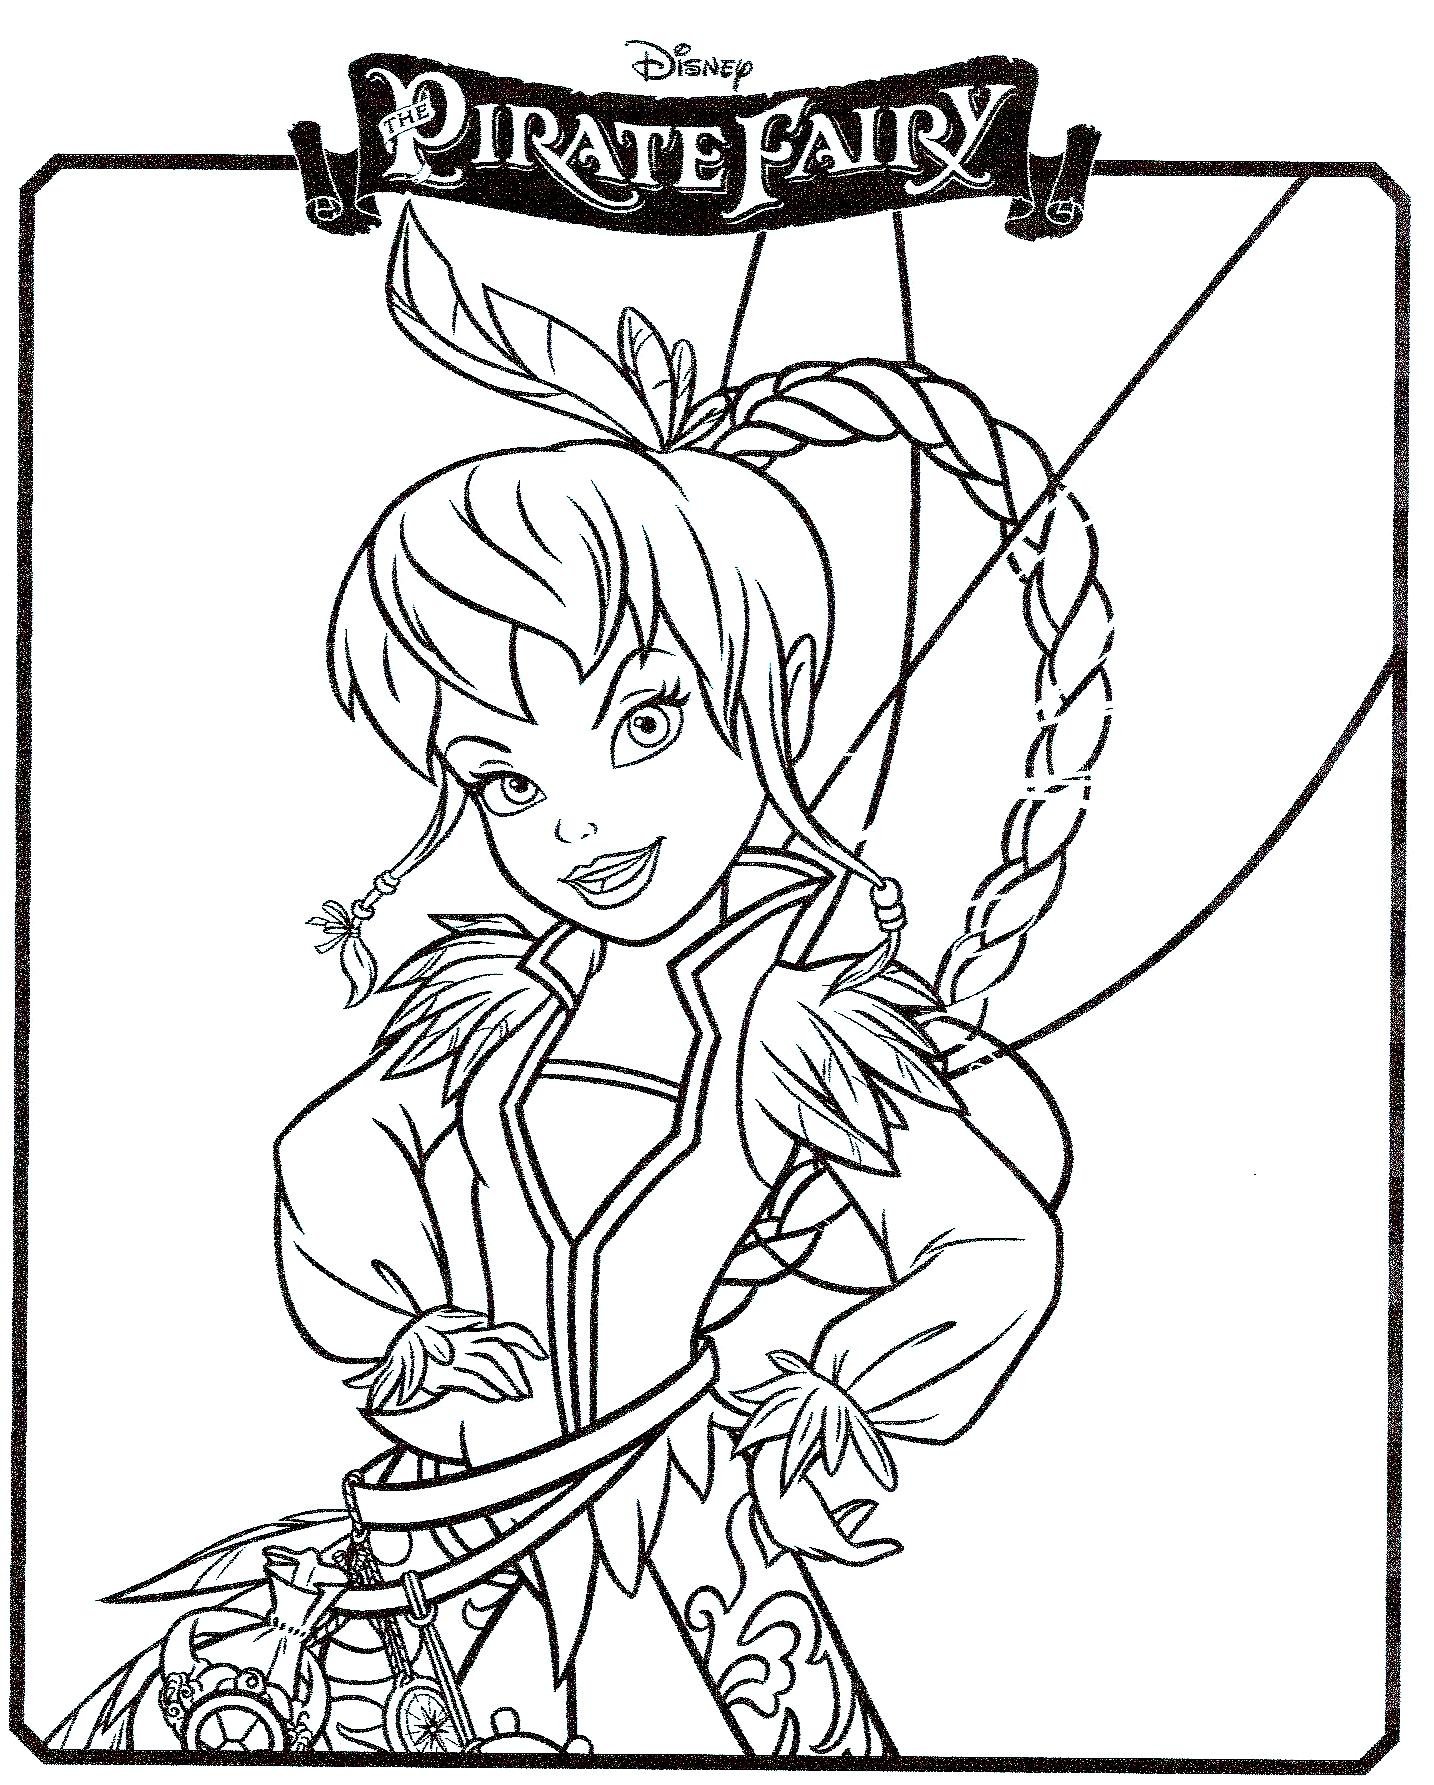 Coloriage pirate mon anniversaire pirate - Fee clochette gratuit ...